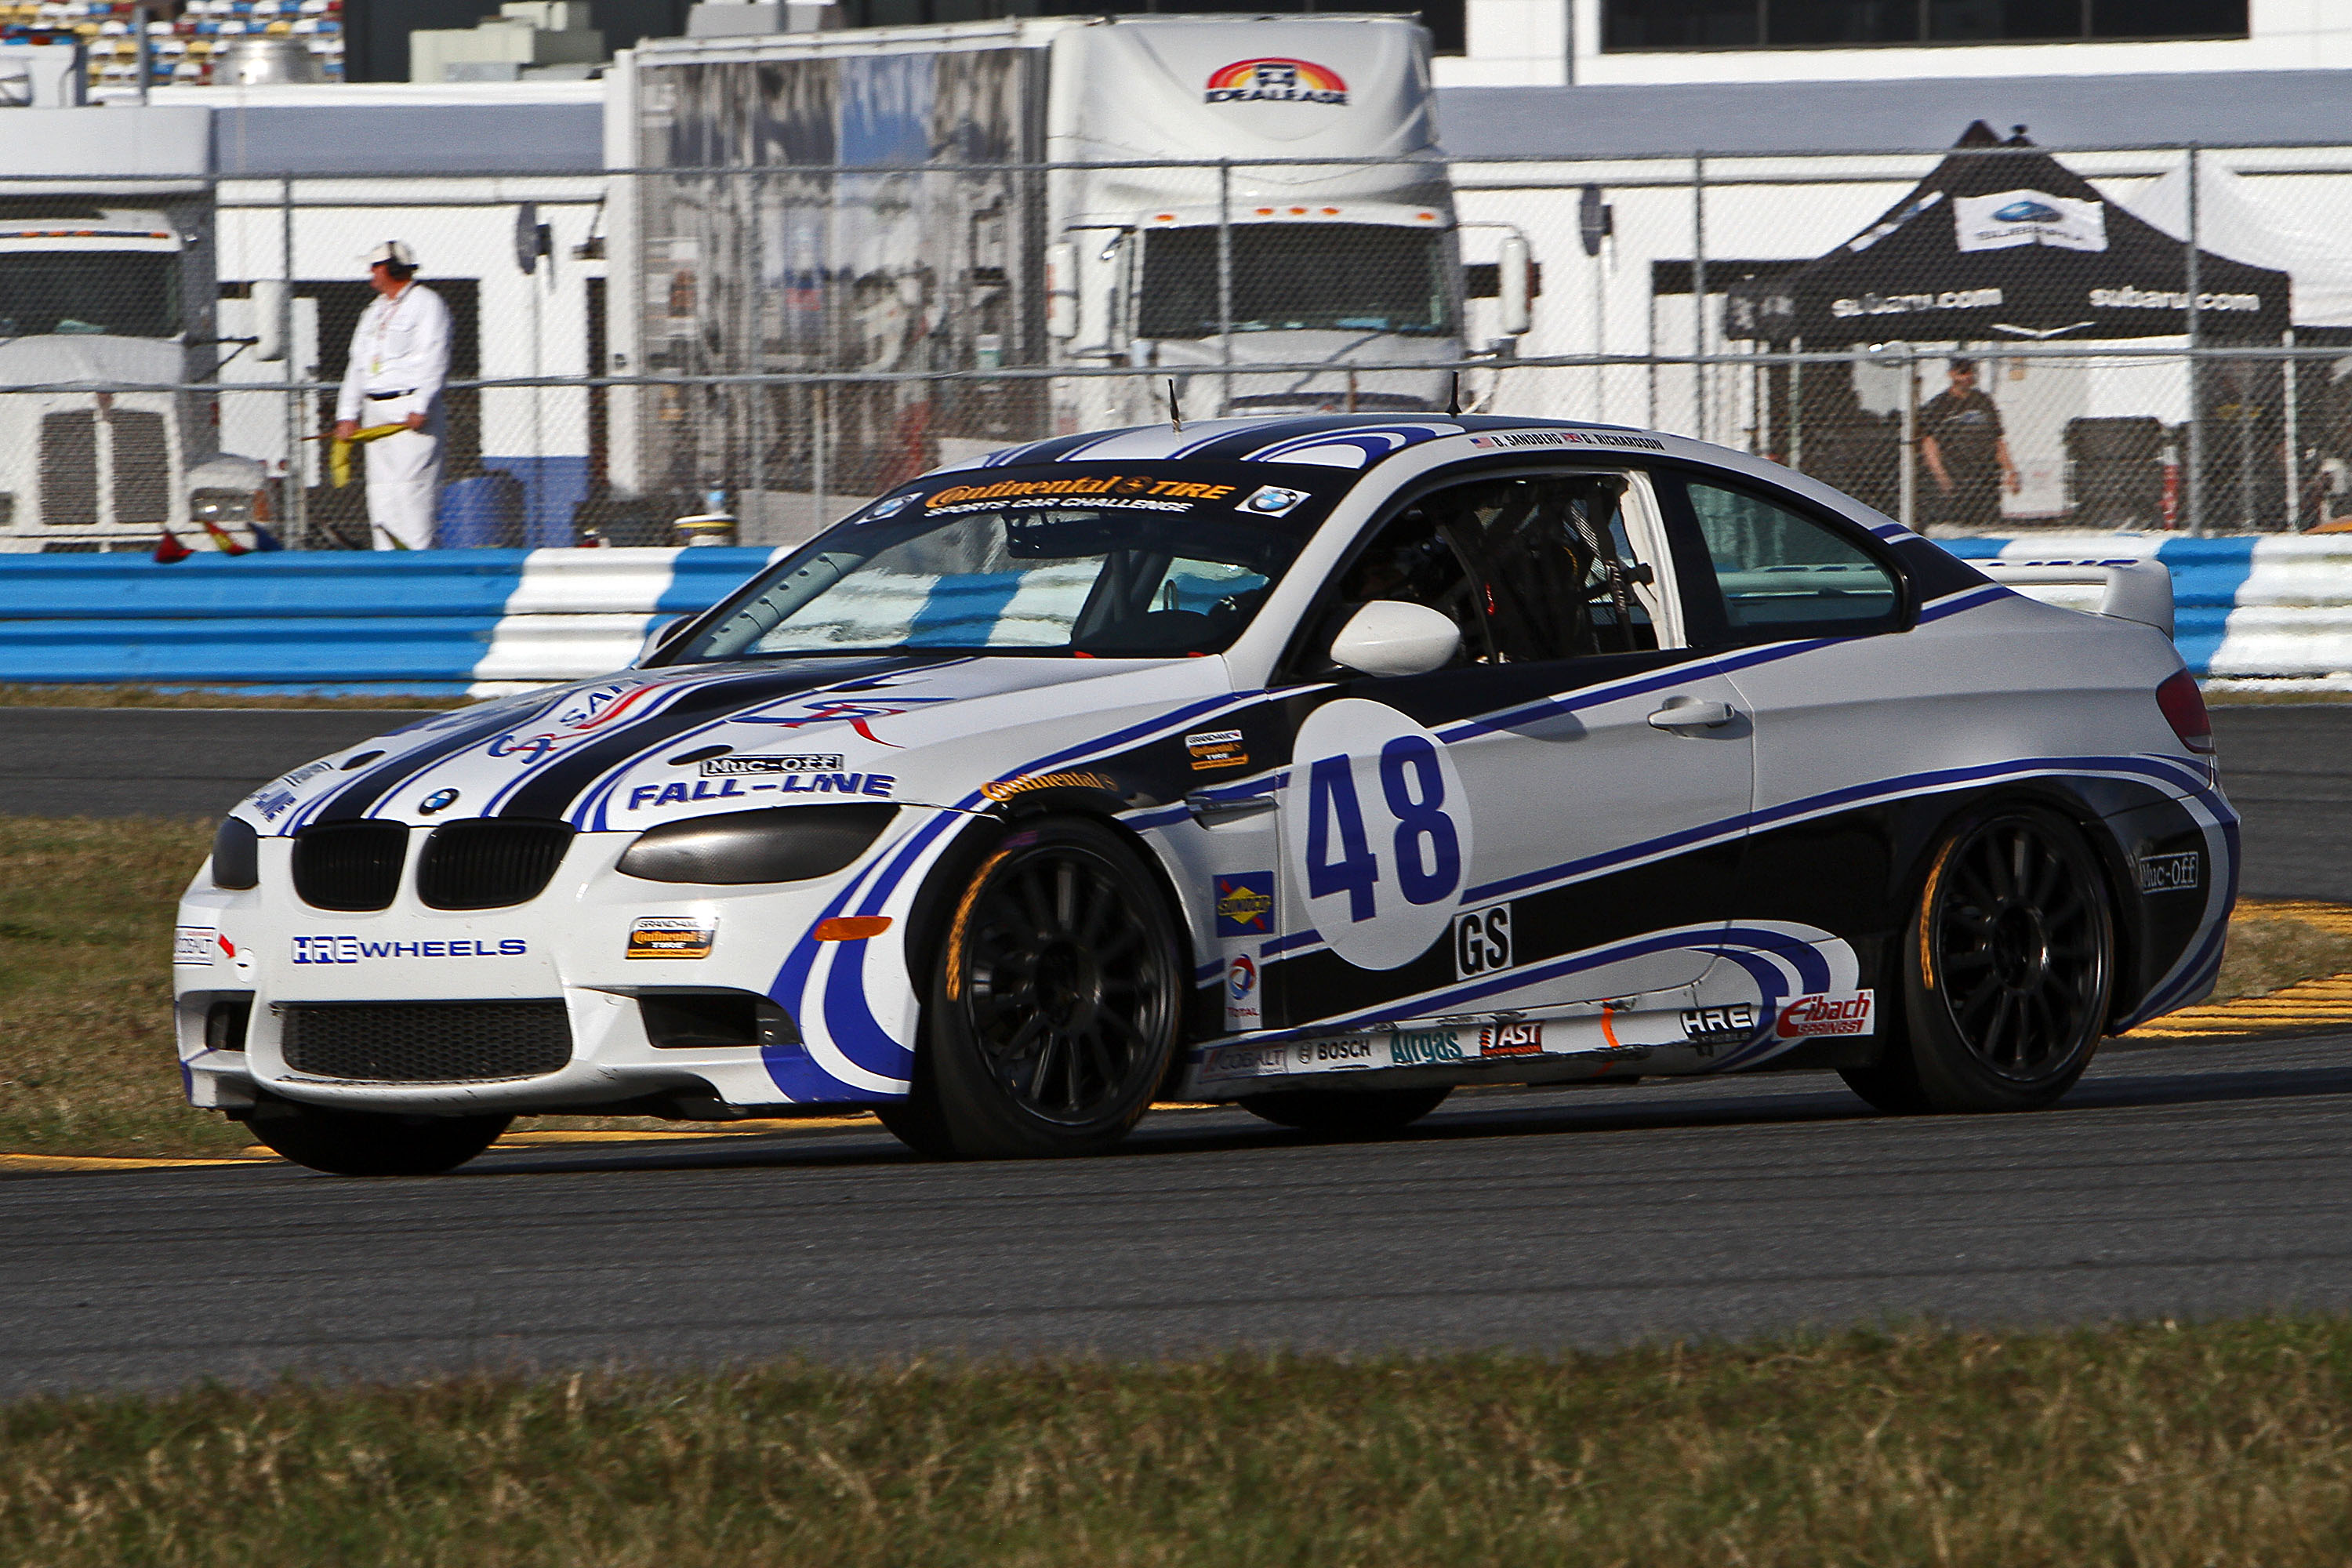 The three Fall-Line teams need improve just a single place each from 2012 (Photo Credit: Grand-Am)